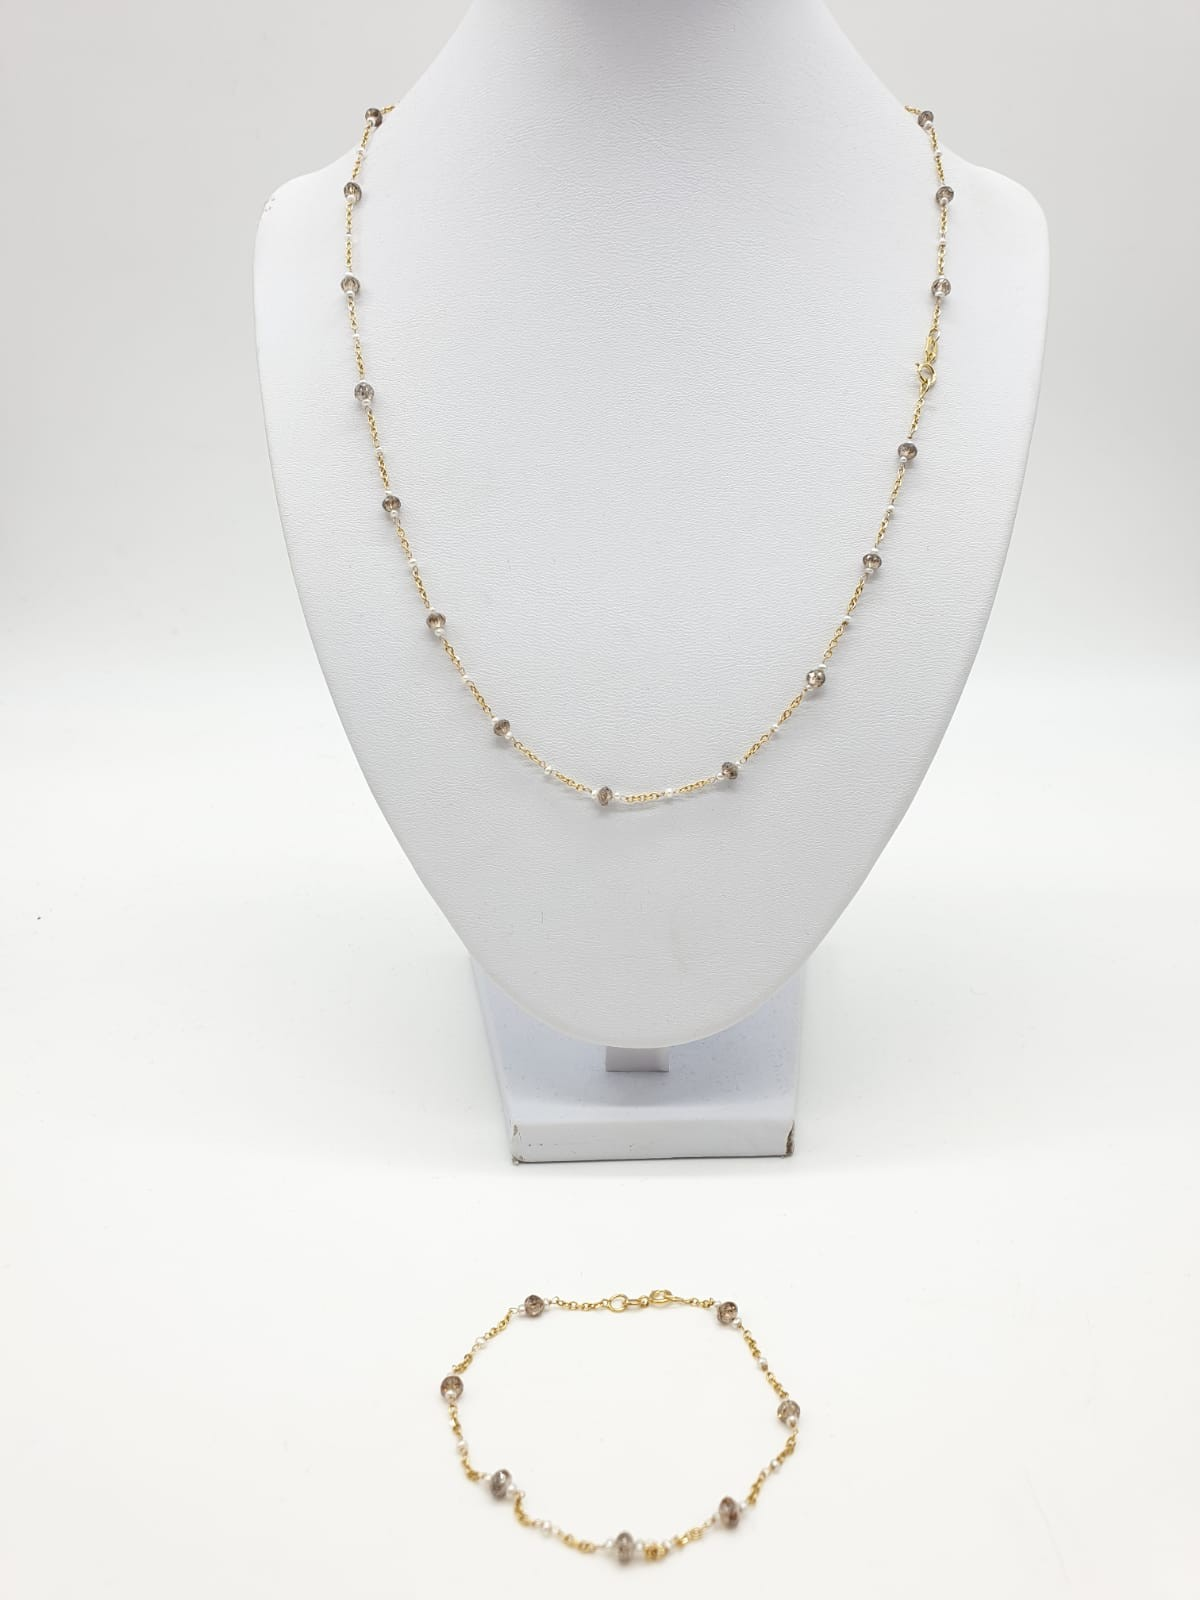 14ct gold brown diamond and pearl necklace with matching bracelet, total weight 5.6g and over 9ct